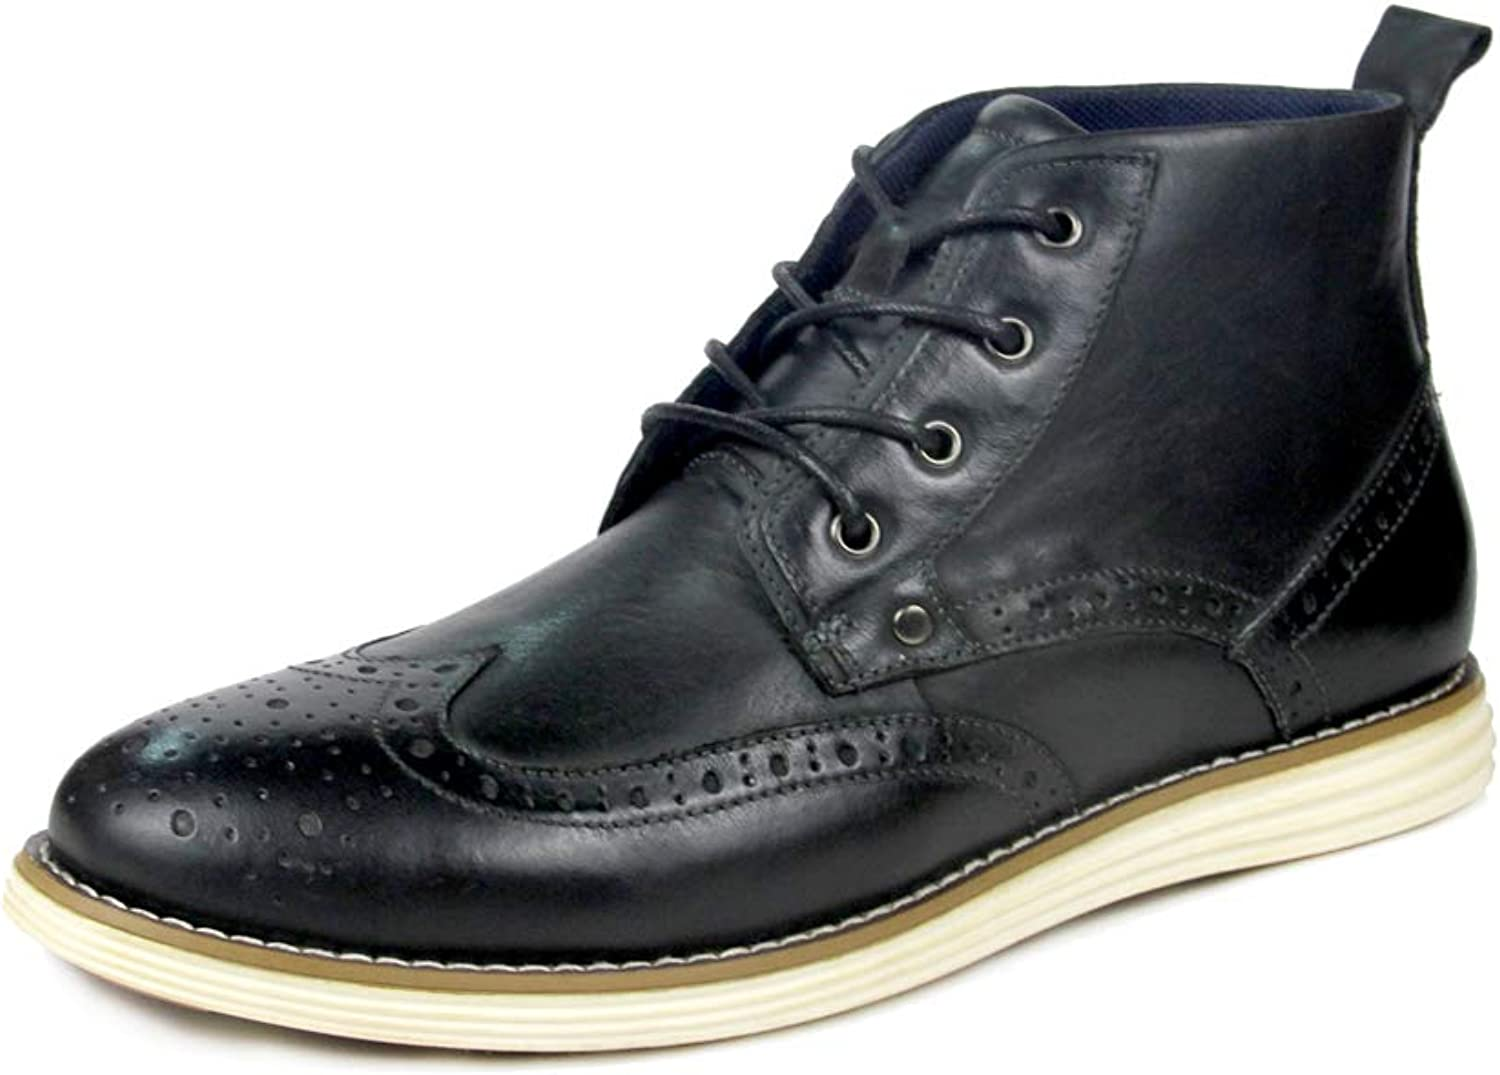 W&TT Men's Solid color Leather Casual Martin Boots,Black,46